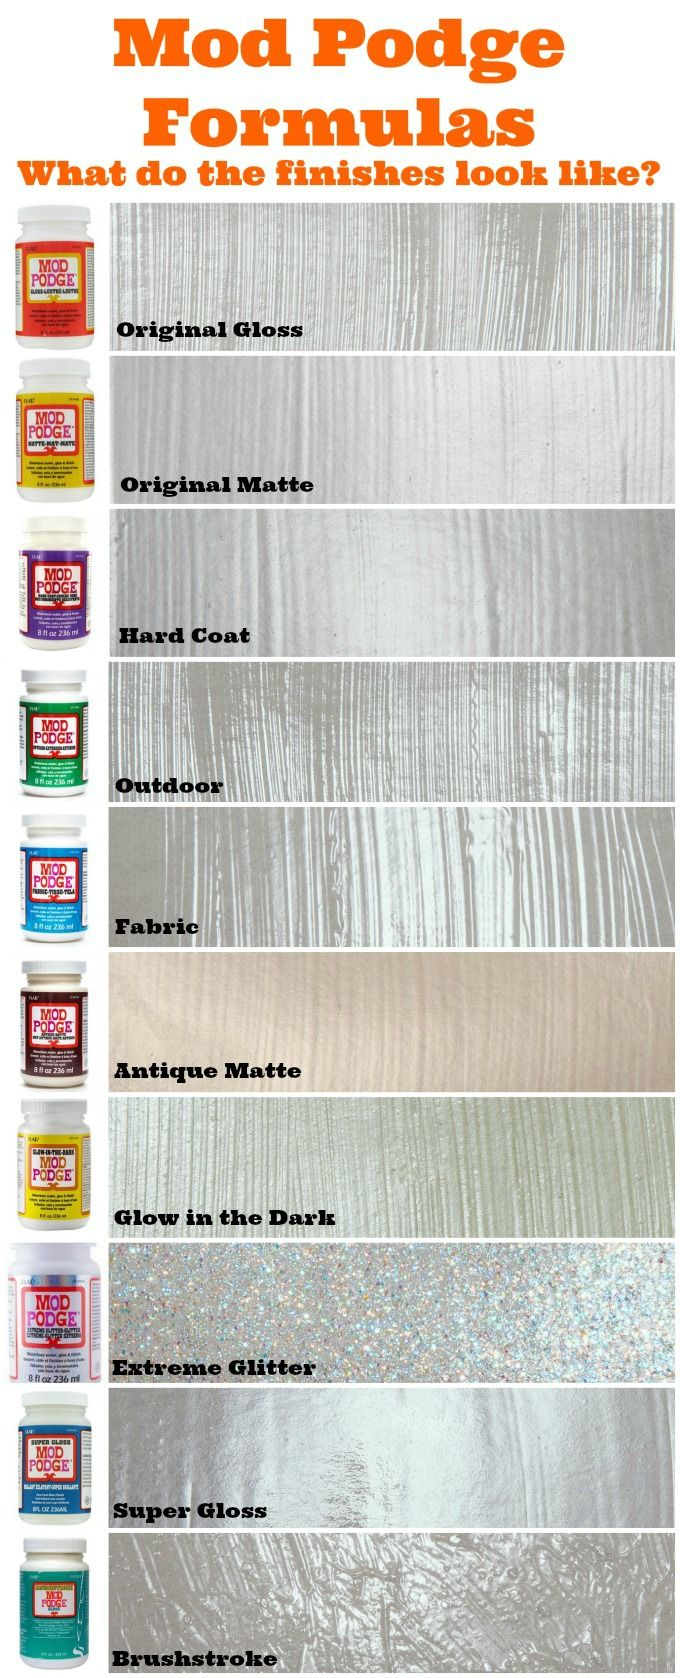 Mod Podge Formulas What The Finishes Look Like Mod Podge Crafts Mod Podge Crafty Diy